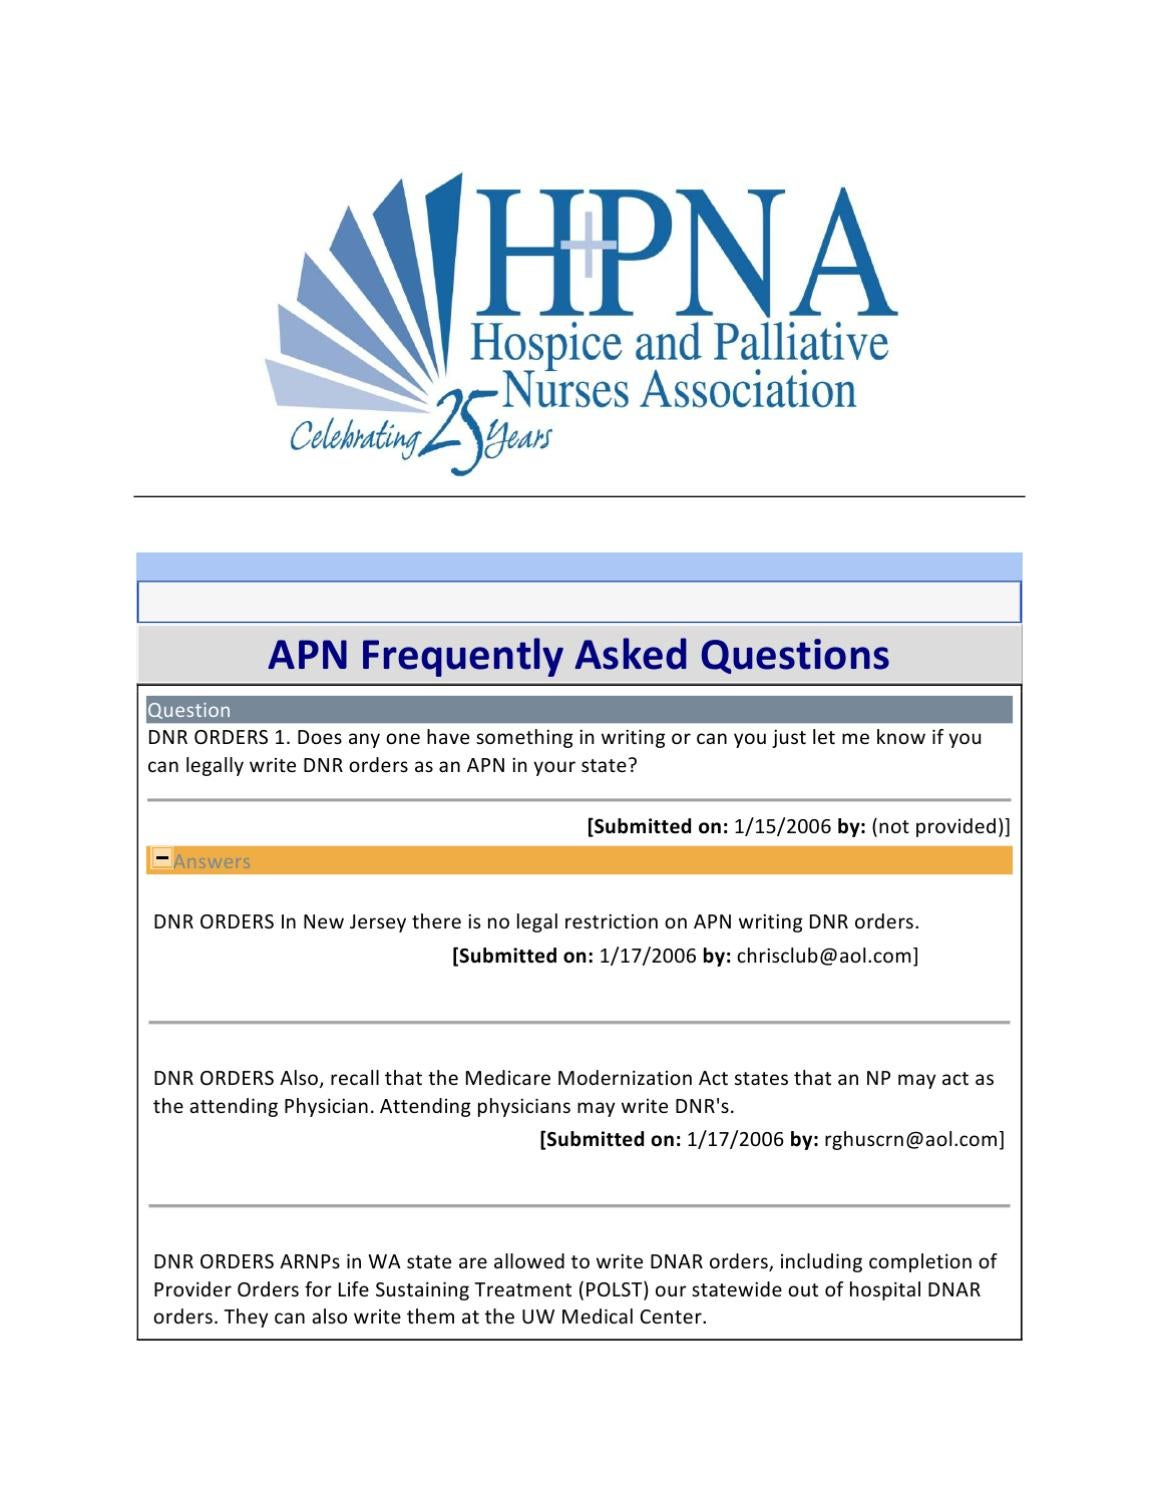 Hpna apn faq repository by hospice and palliative nurses assocation hpna apn faq repository by hospice and palliative nurses assocation issuu falaconquin